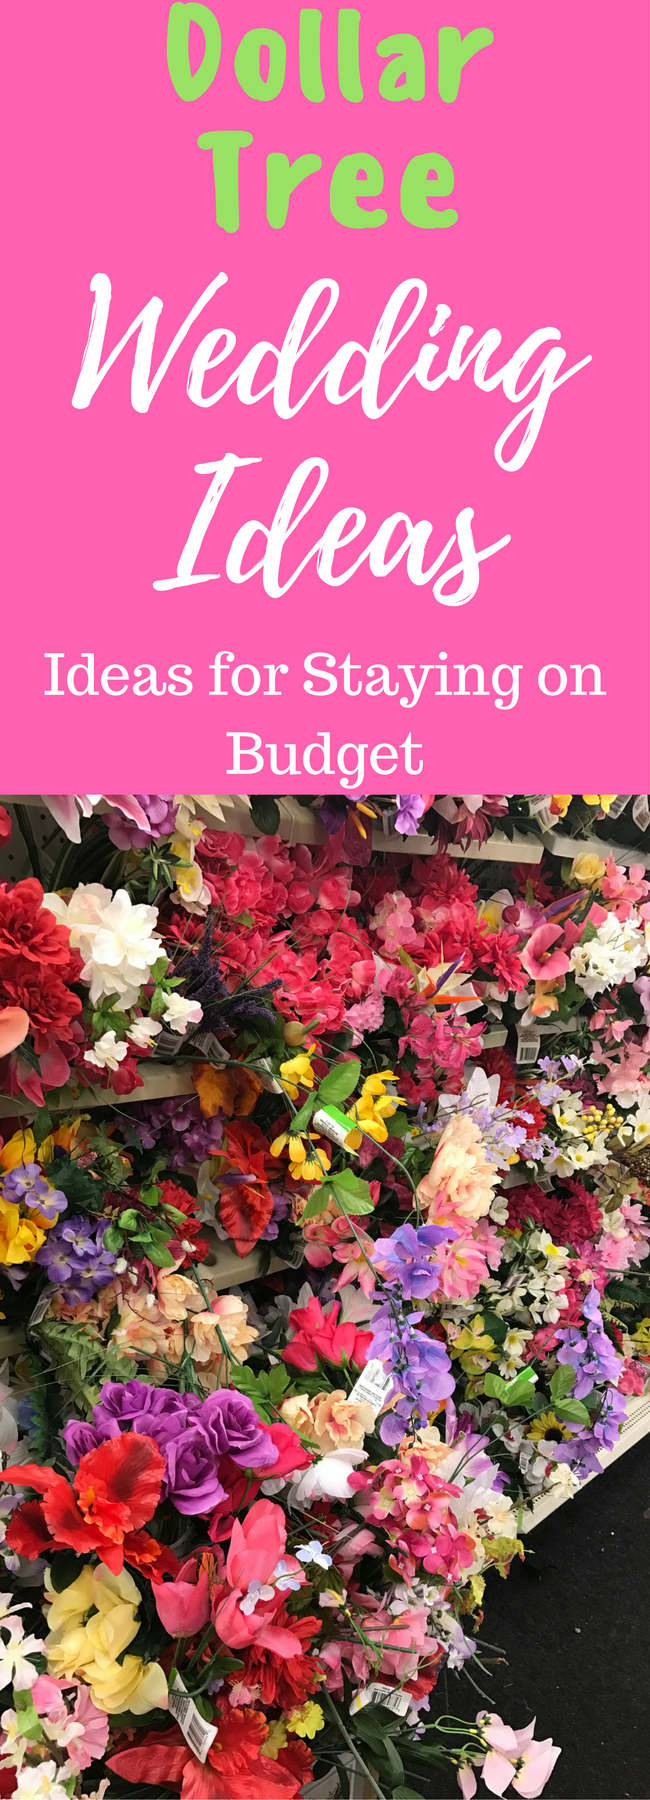 Dollar Store Wedding Ideas: What to Buy to Stay Under Budget!